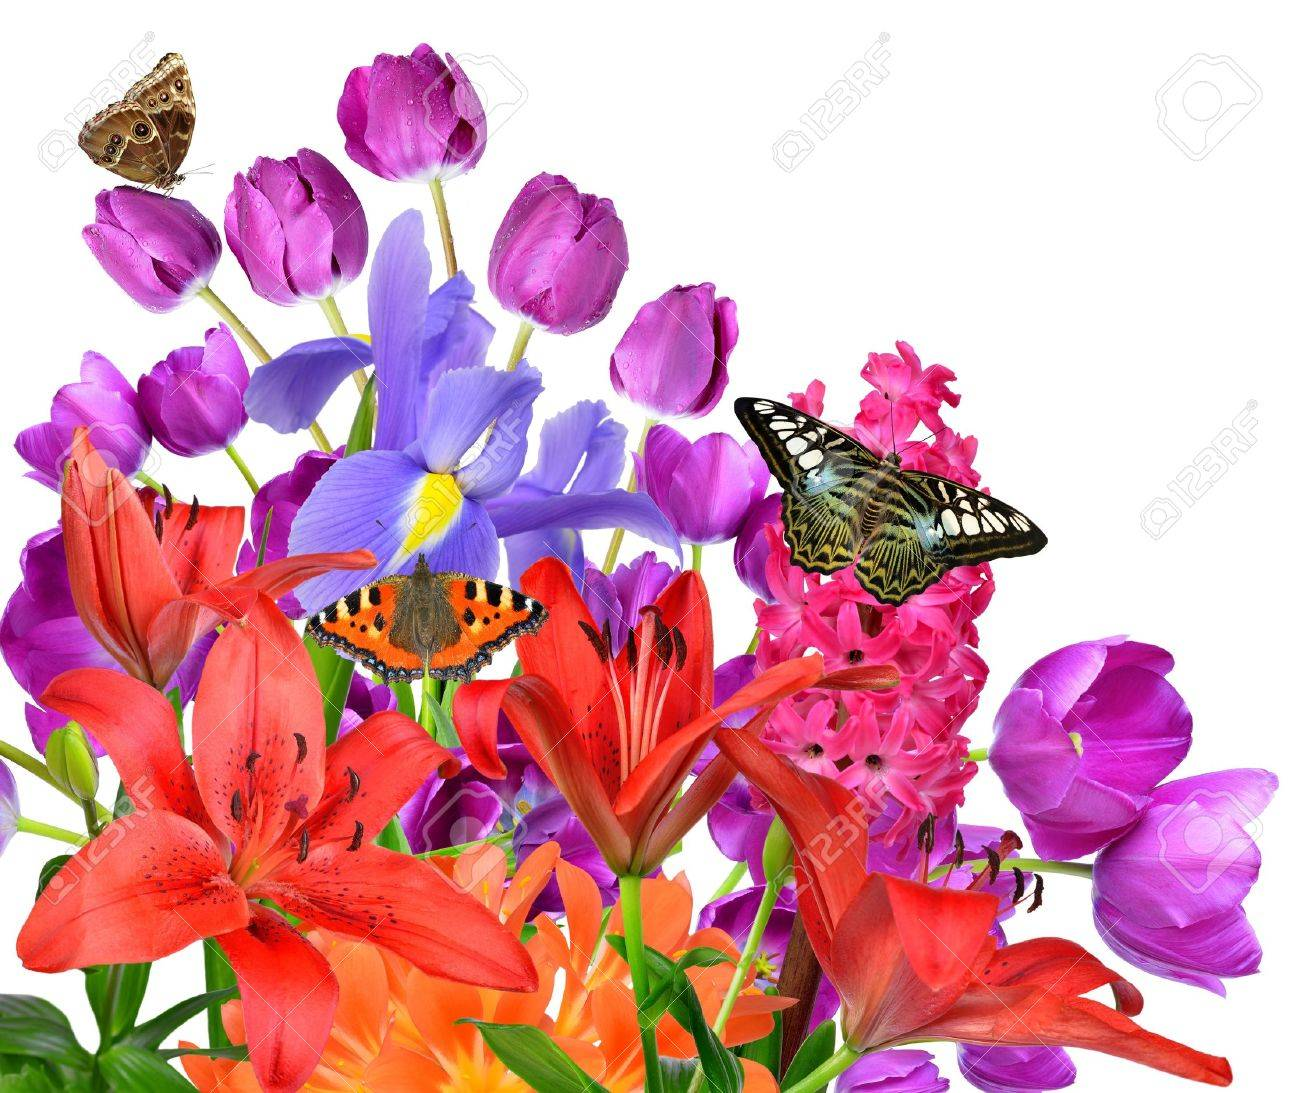 Spring Flowers With Butterflies Isolated On White Background Stock